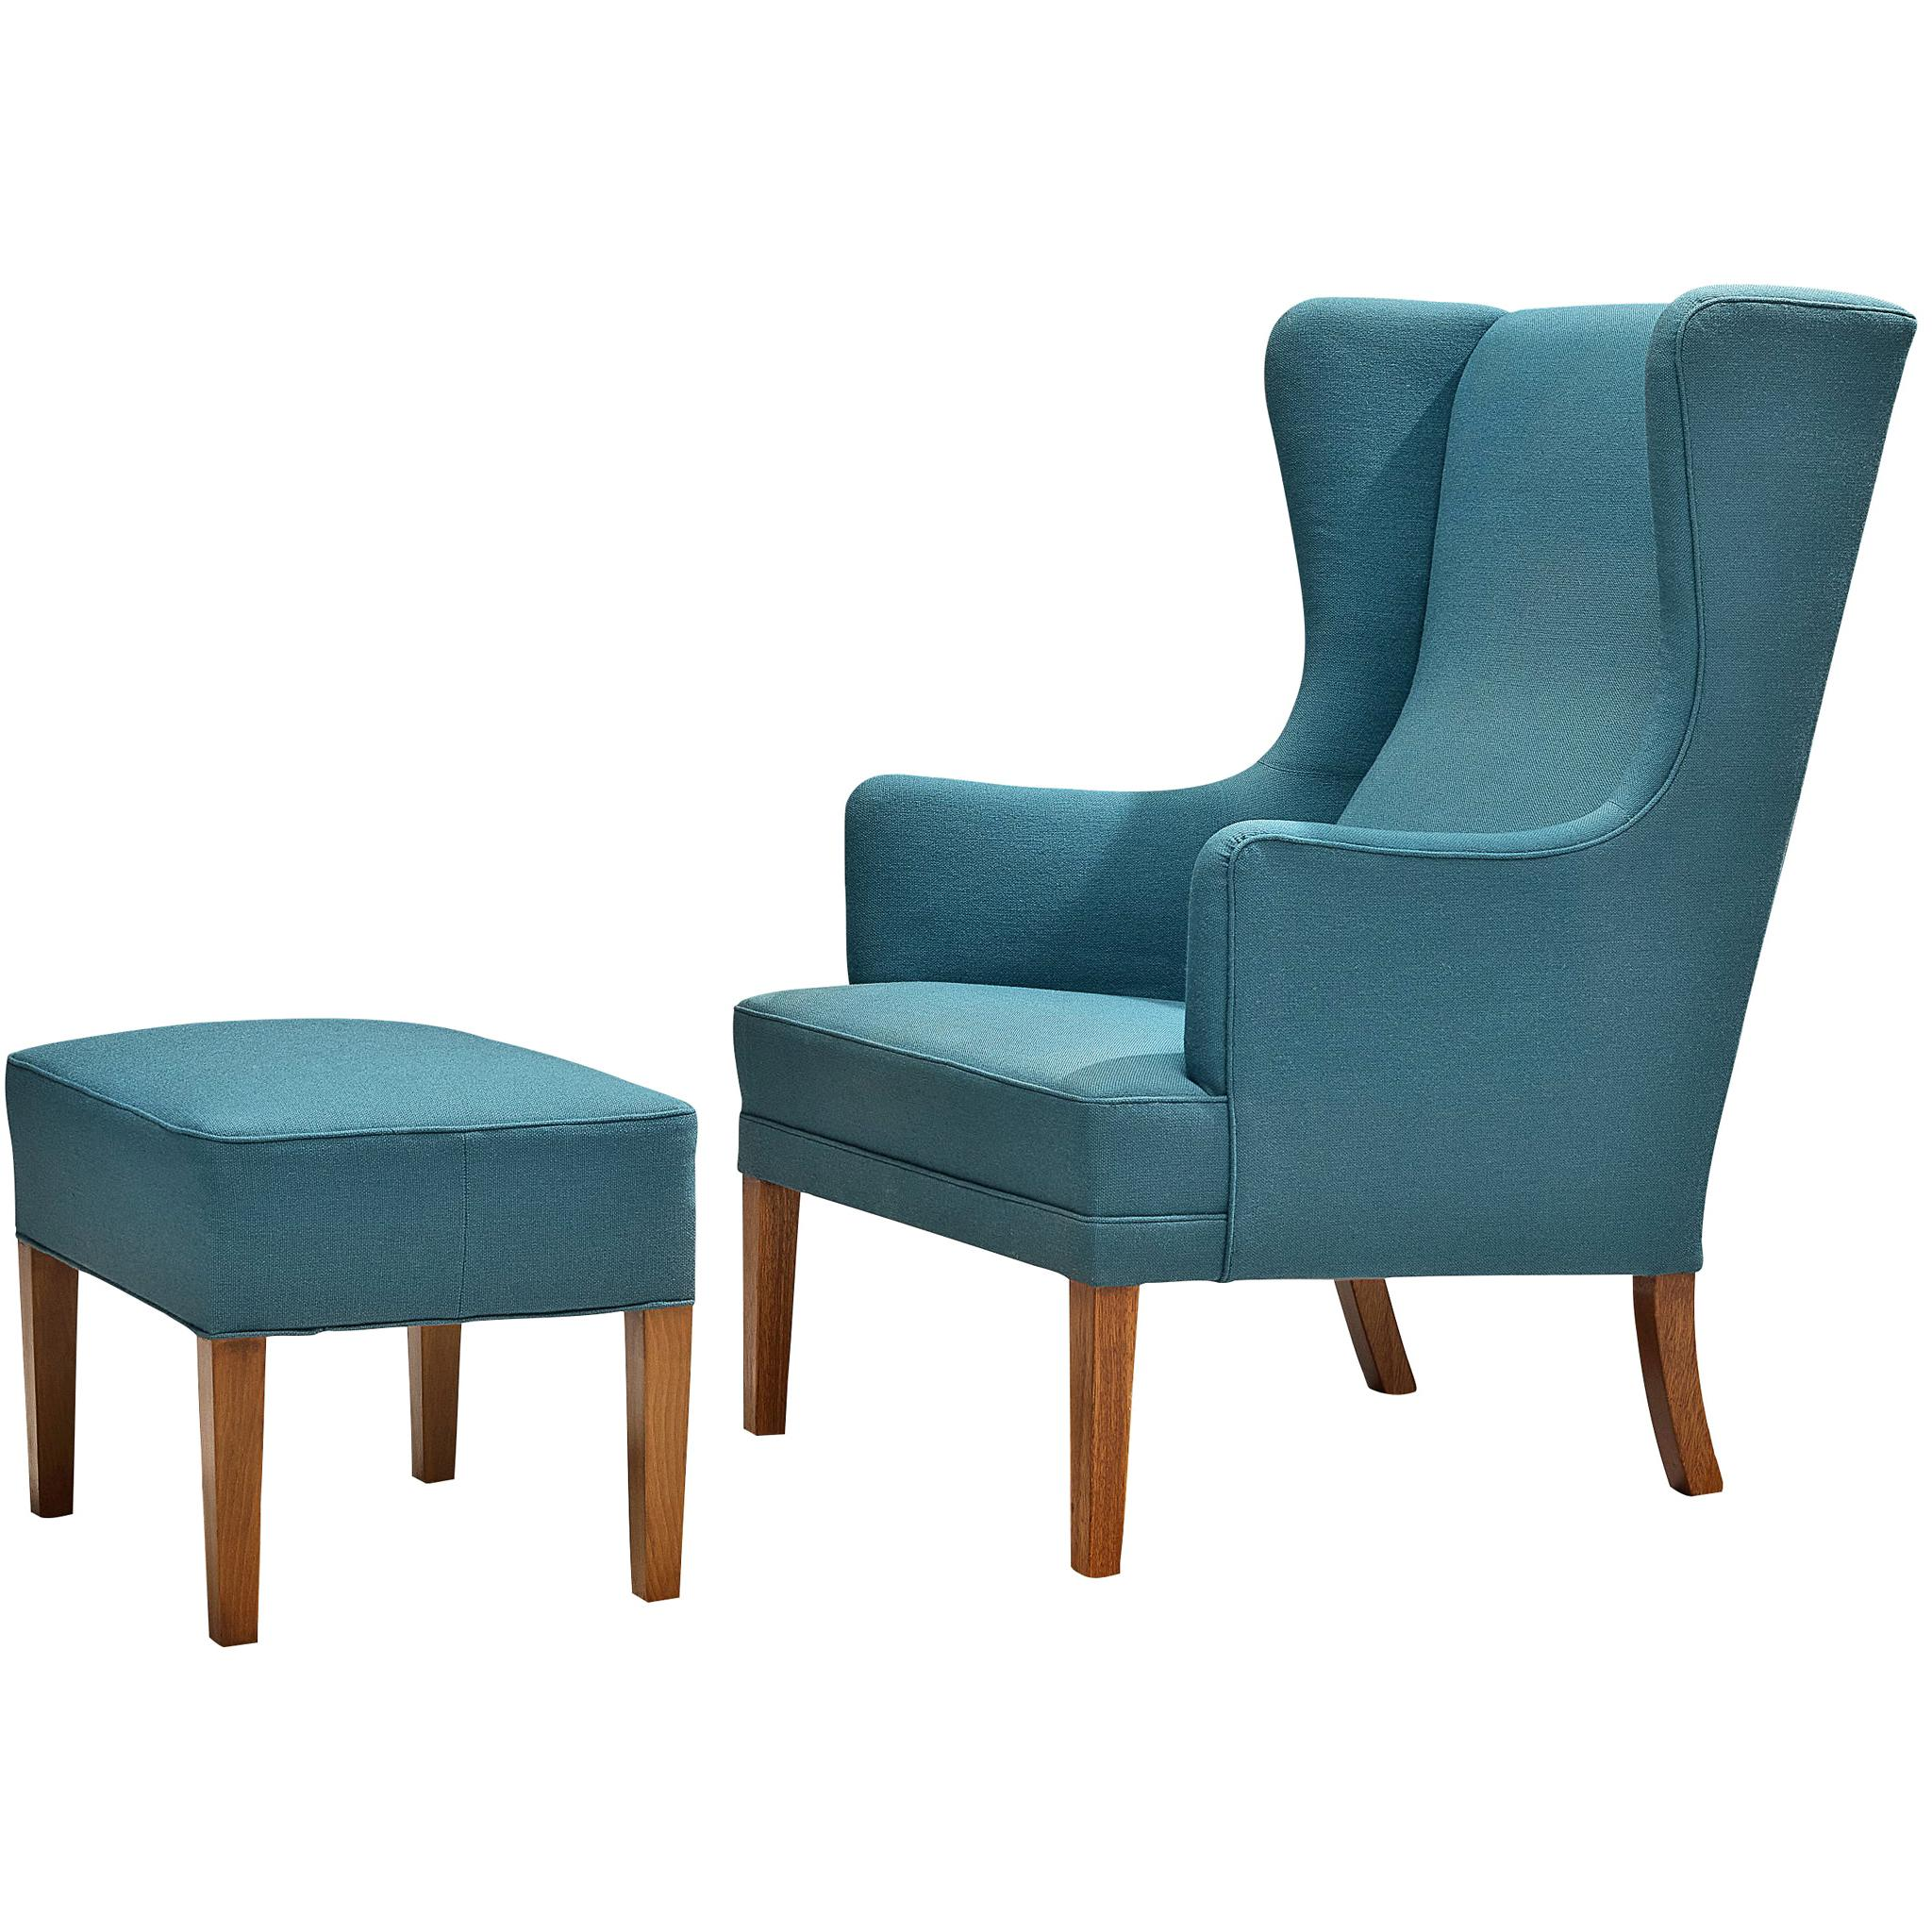 Danish Lounge Chair in Blue Upholstery